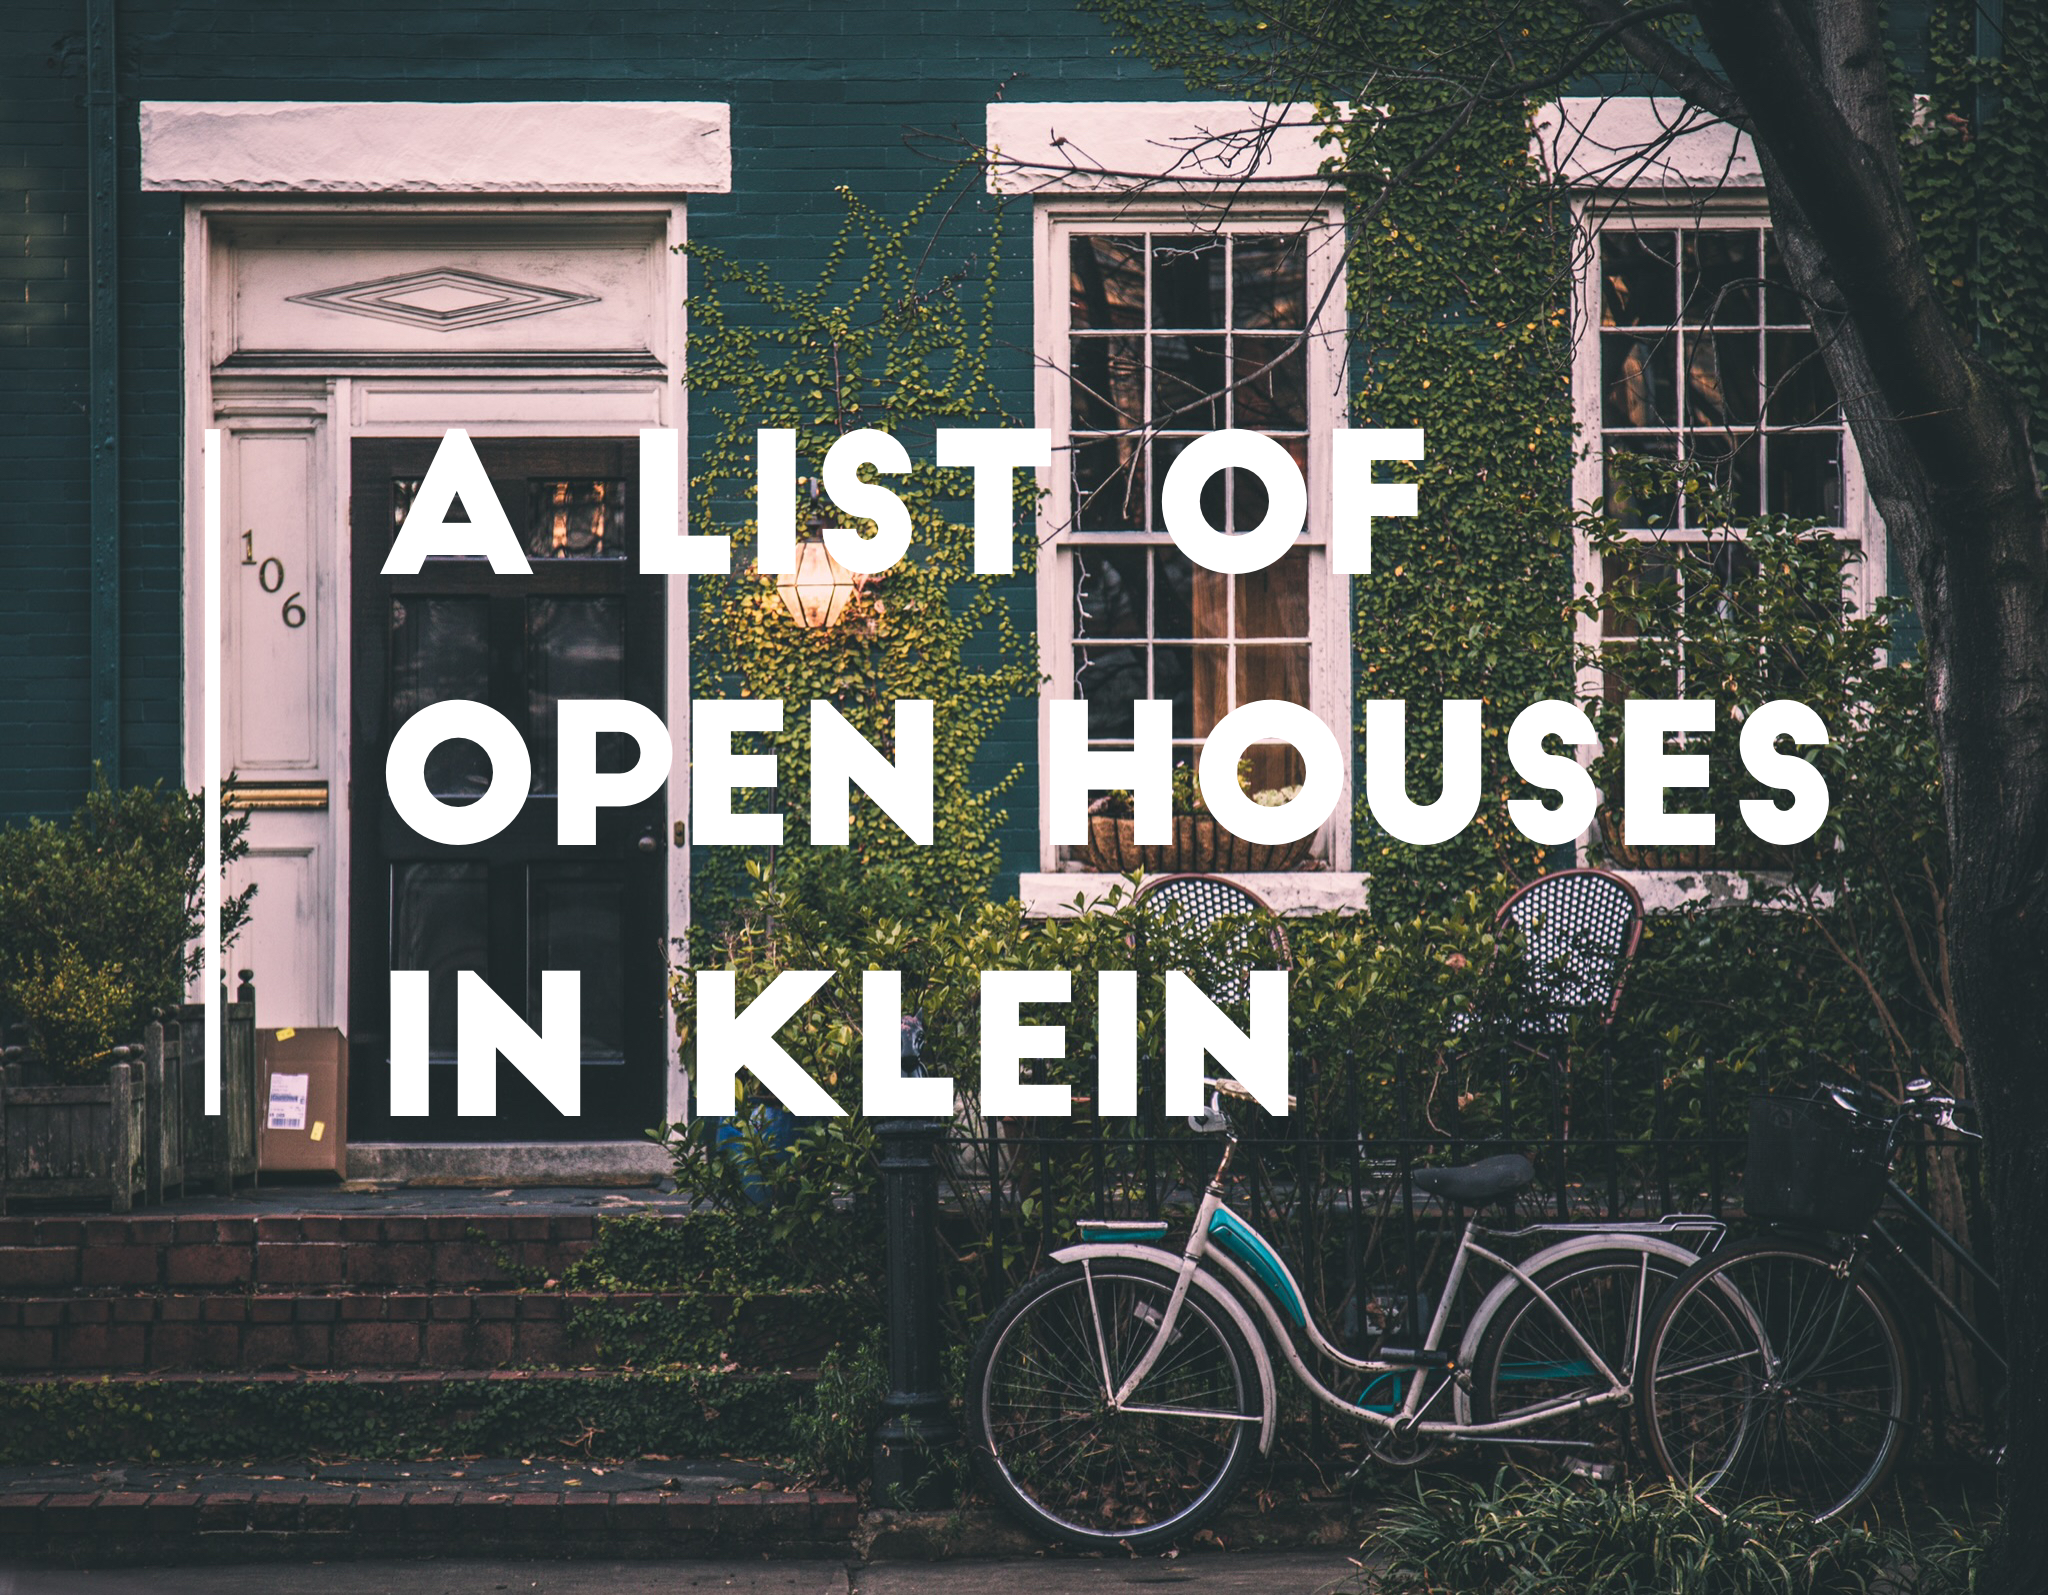 a list of open houses in klein tx texas relocating real estate agent realtor brokerage jo & co realty group jordan schilleci